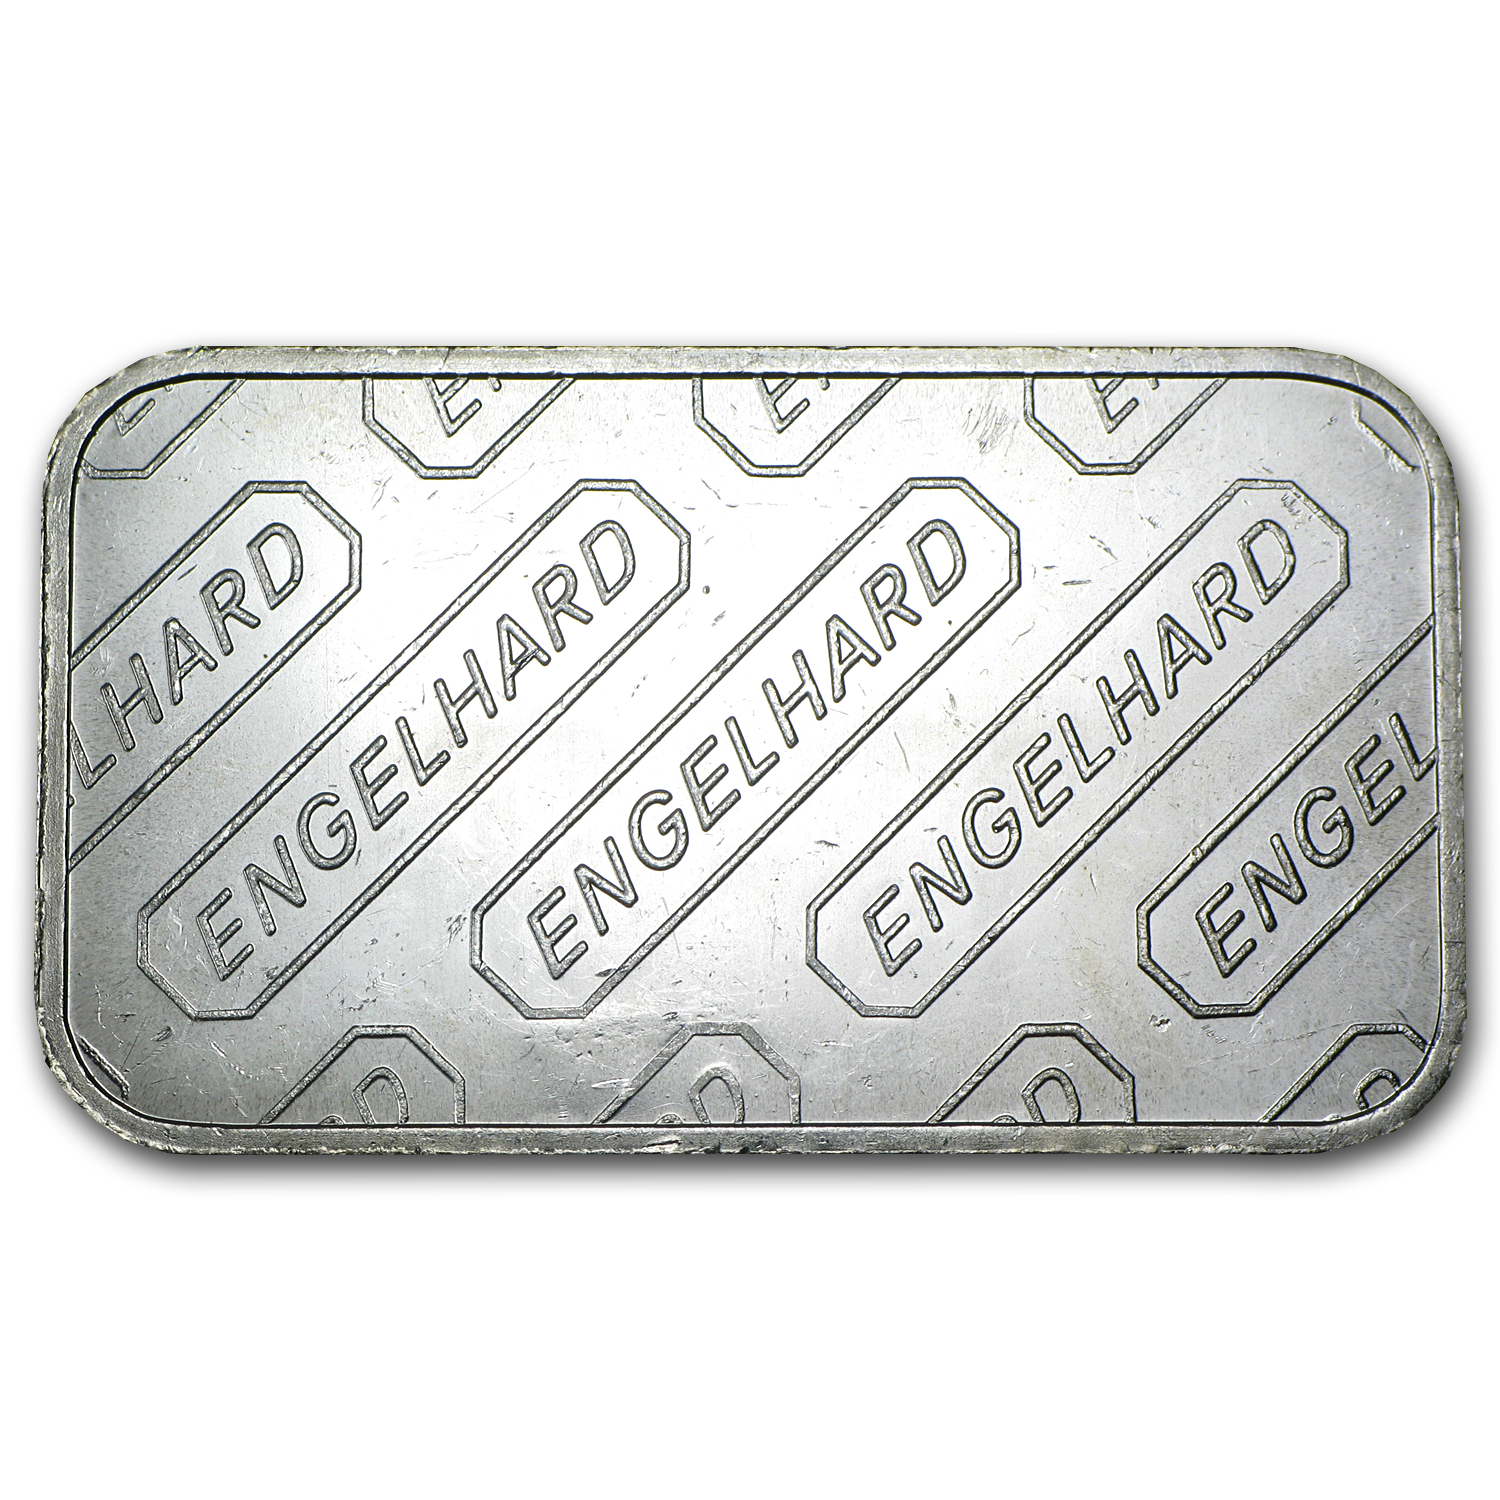 1 oz Silver Bars - Engelhard (Wide/Logo/5-digit)